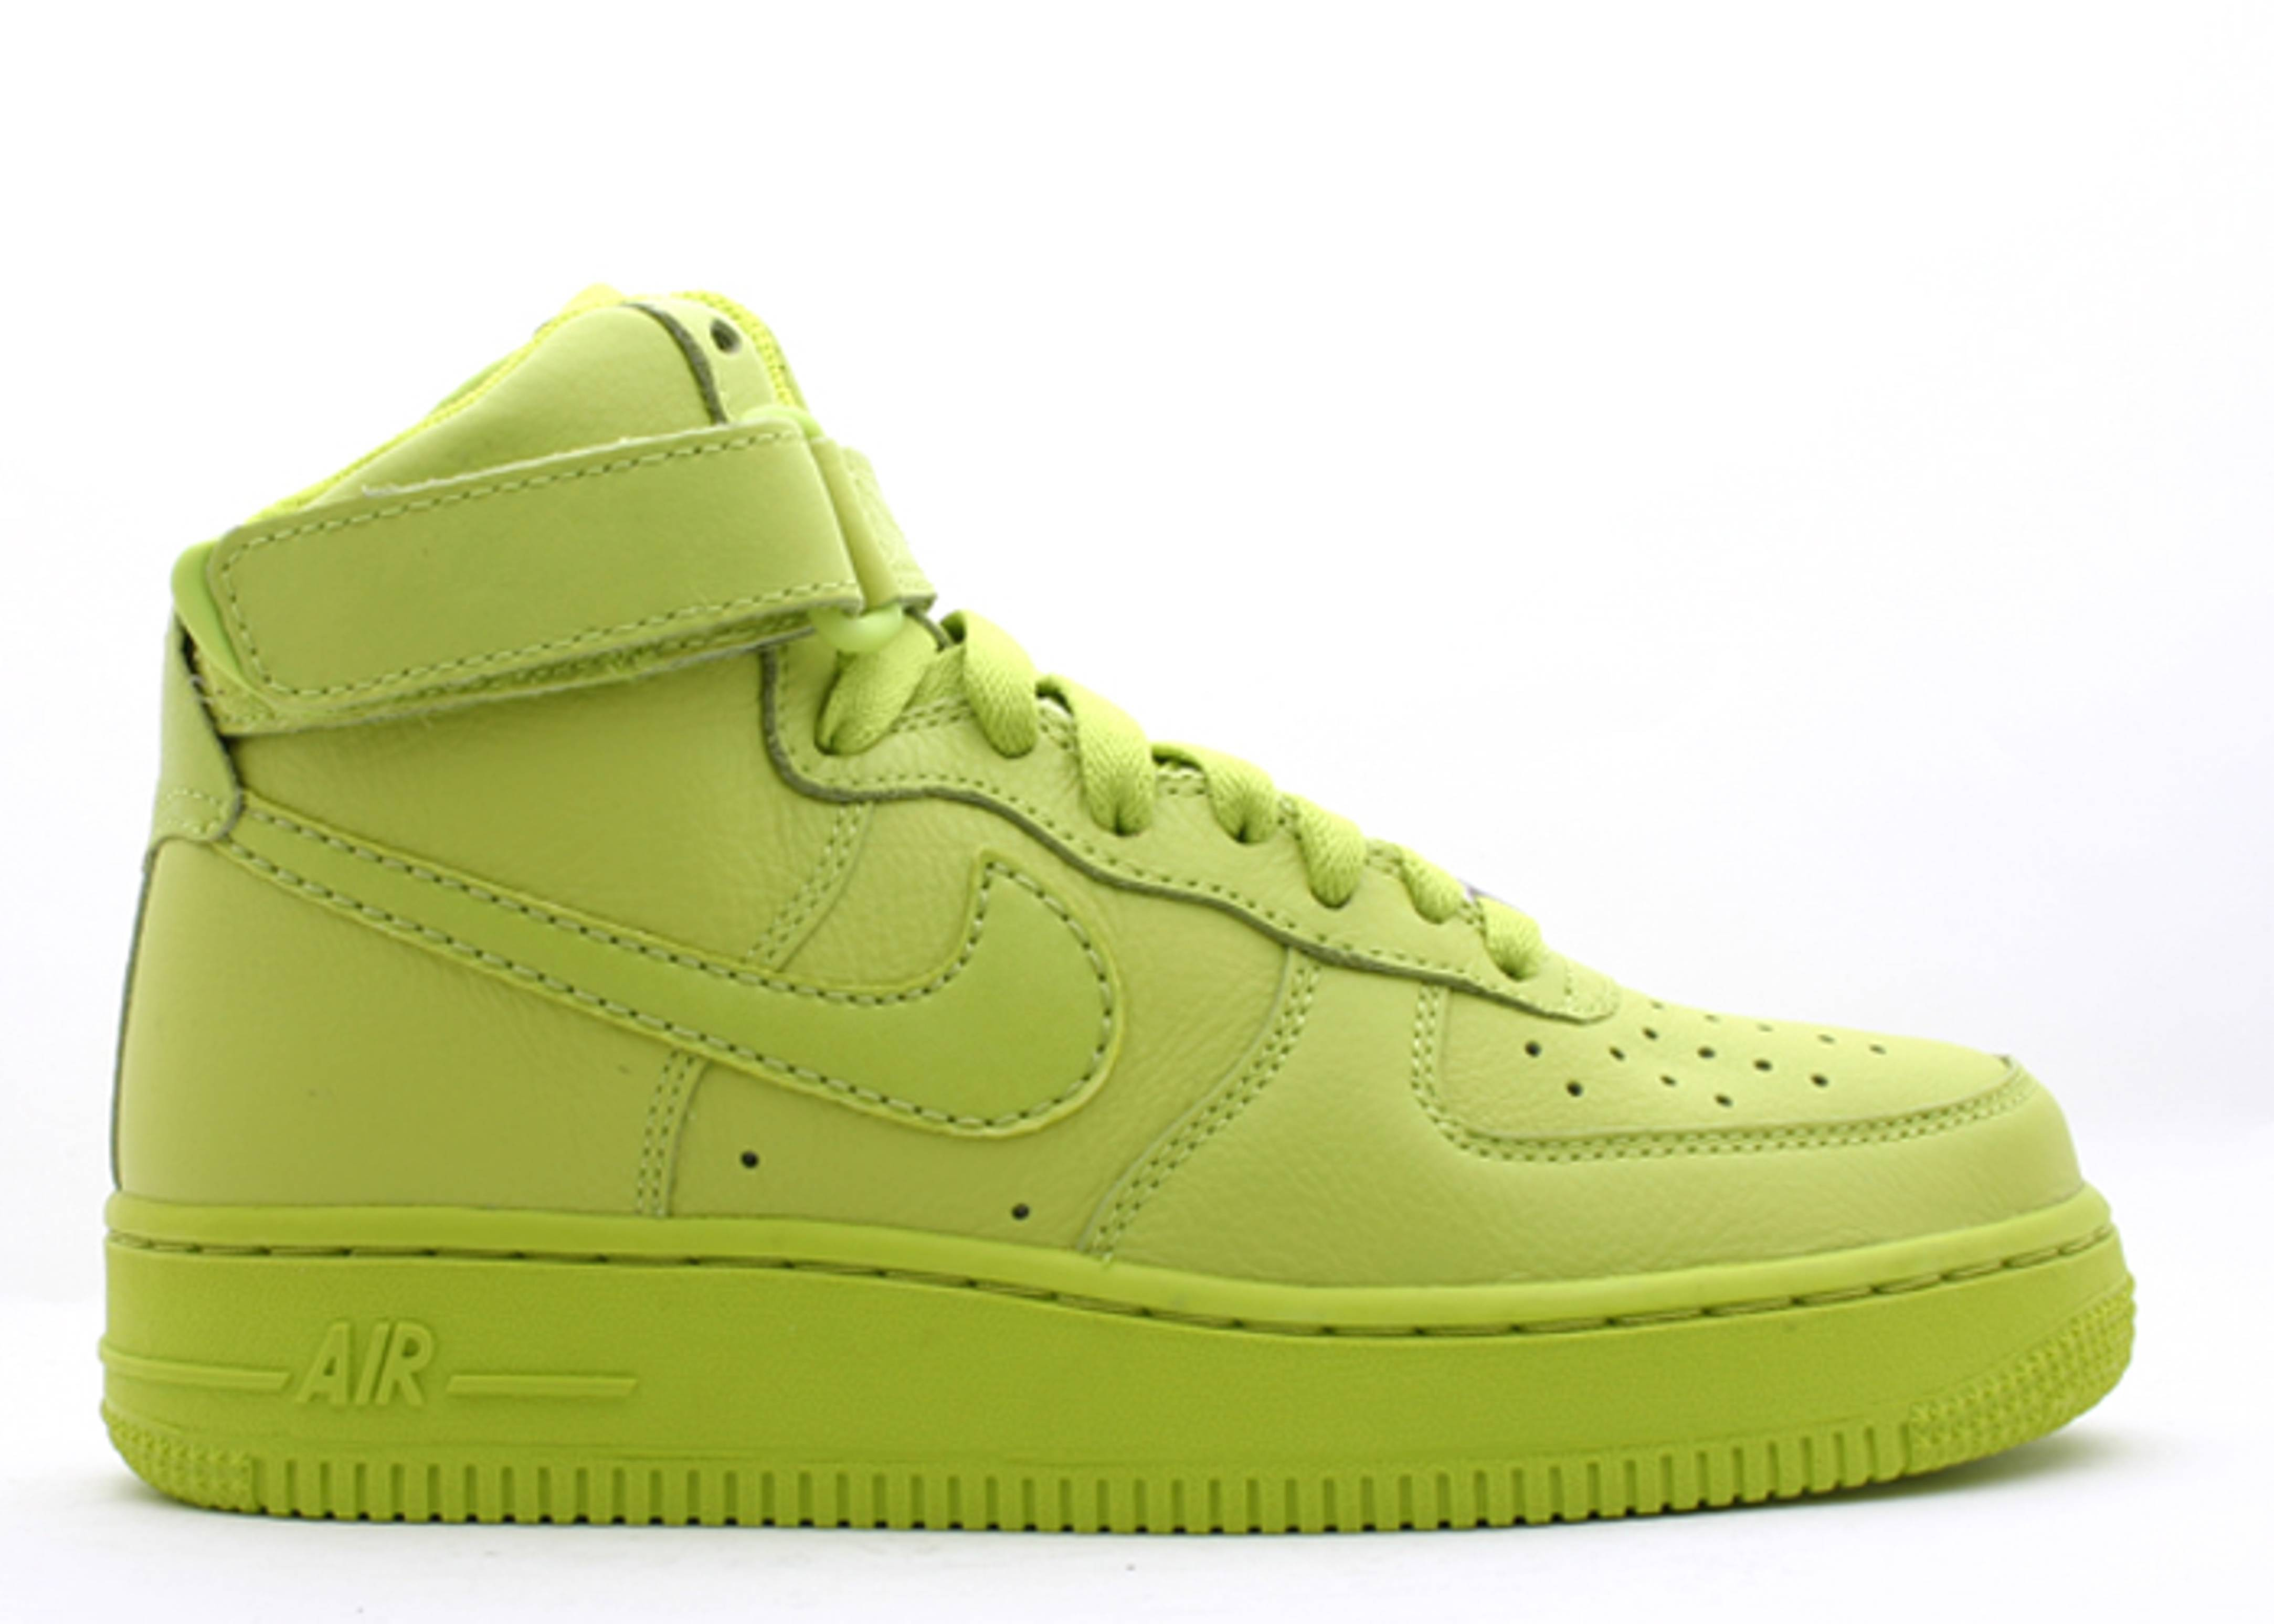 w's air force 1 high